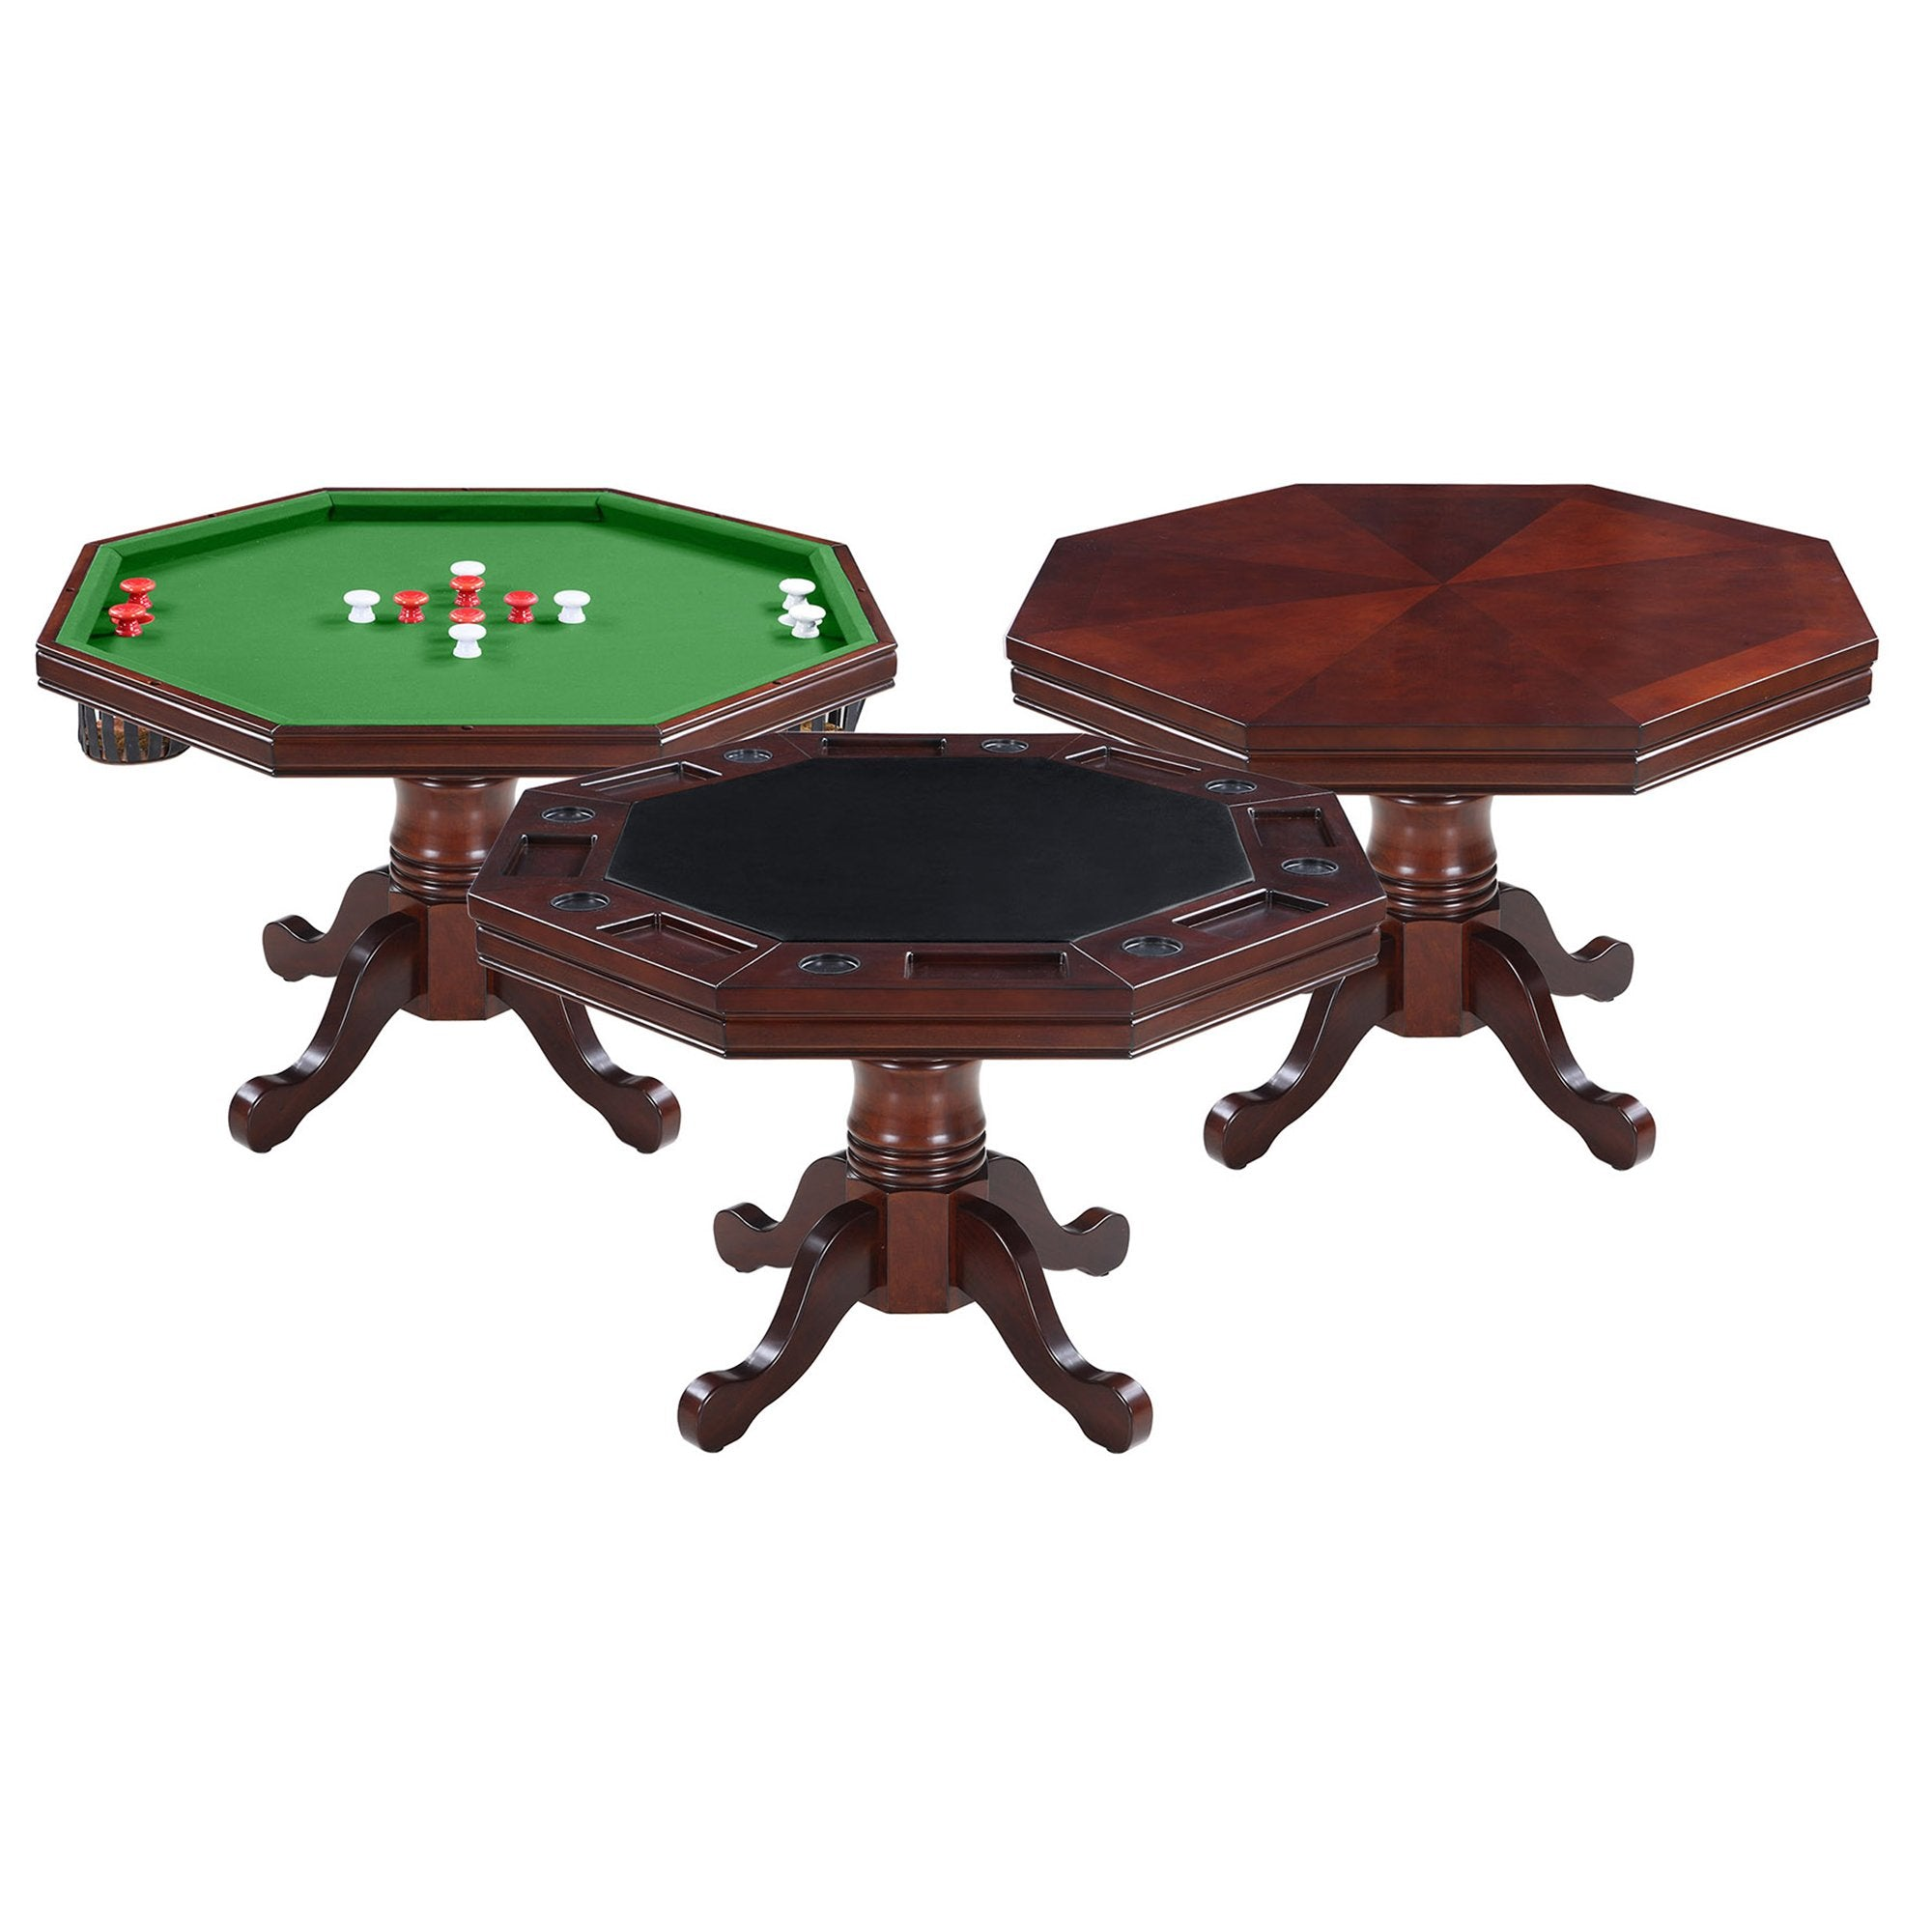 Hathaway Kingston Walnut Octagon 3 in 1 Poker Table 8 Person - Gaming Blaze